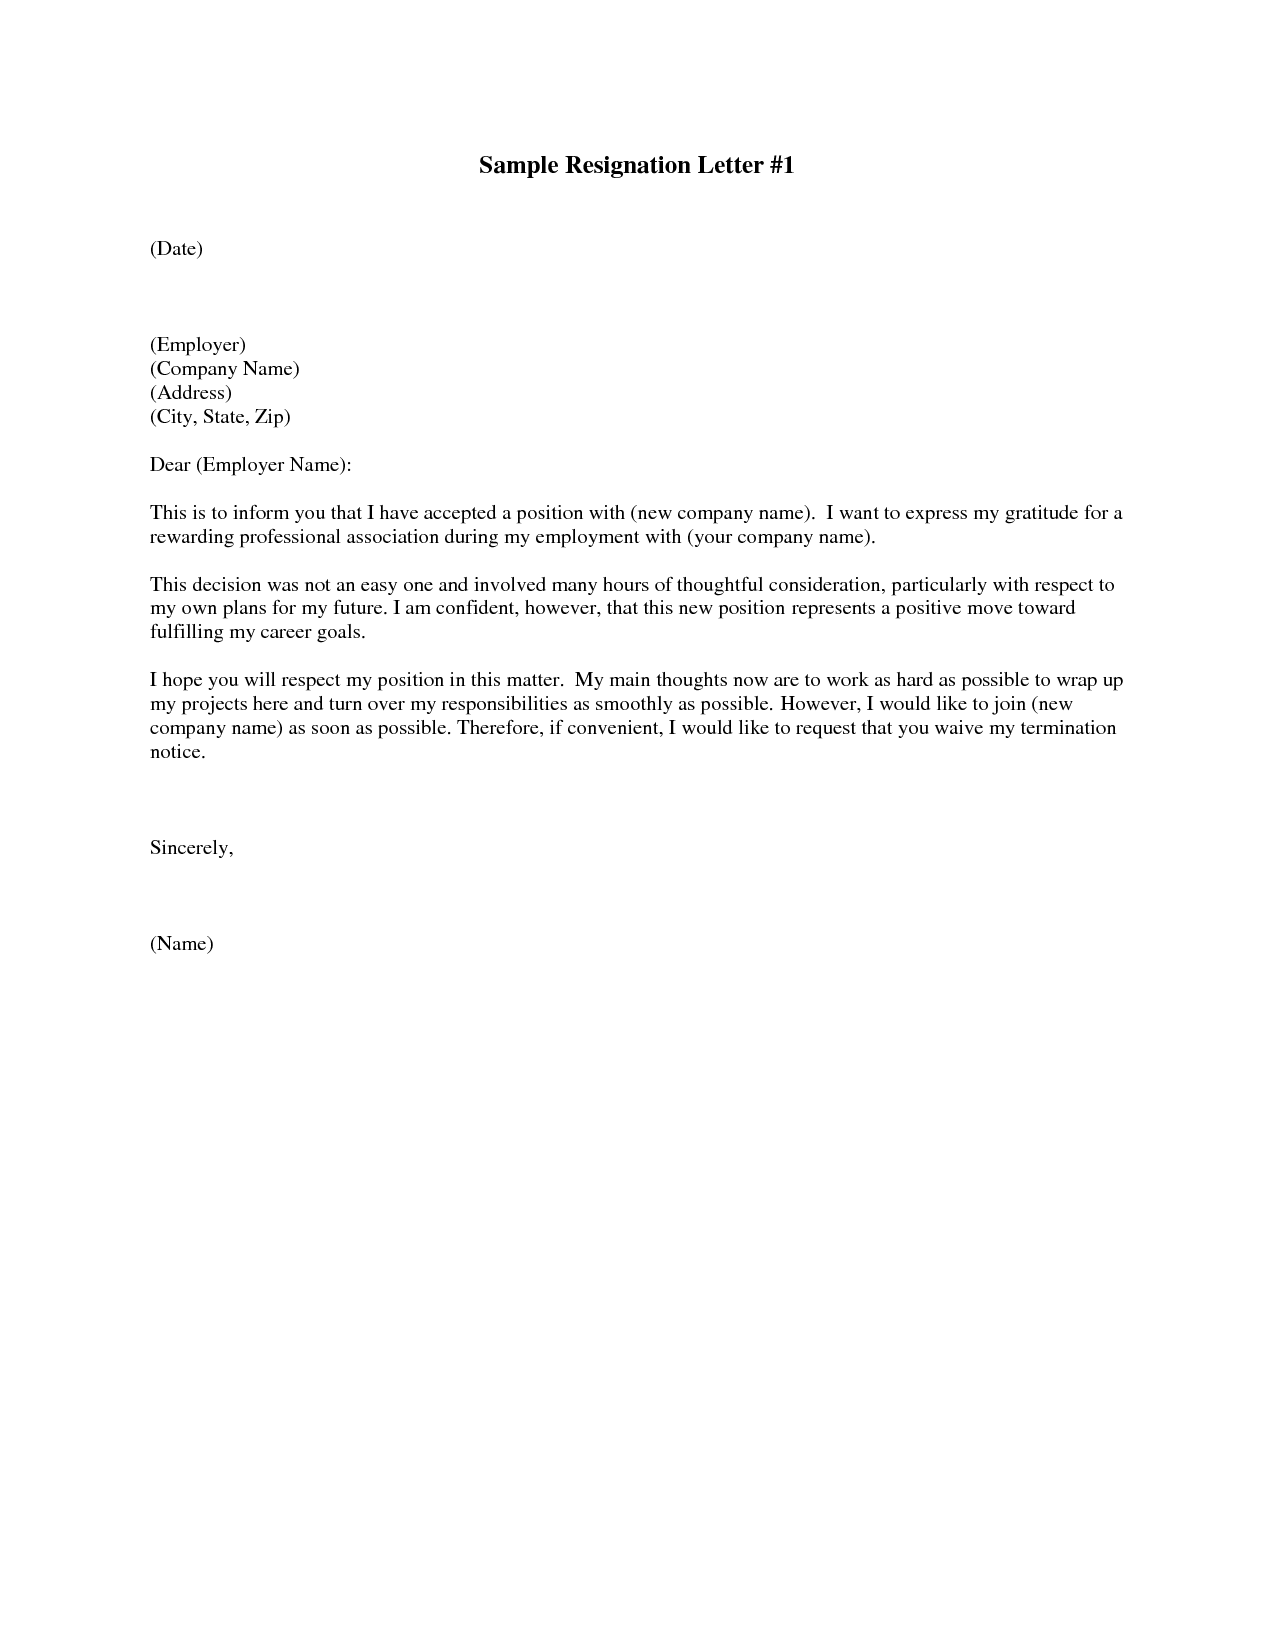 Resignation Letter Format resignation letter have accept position new company